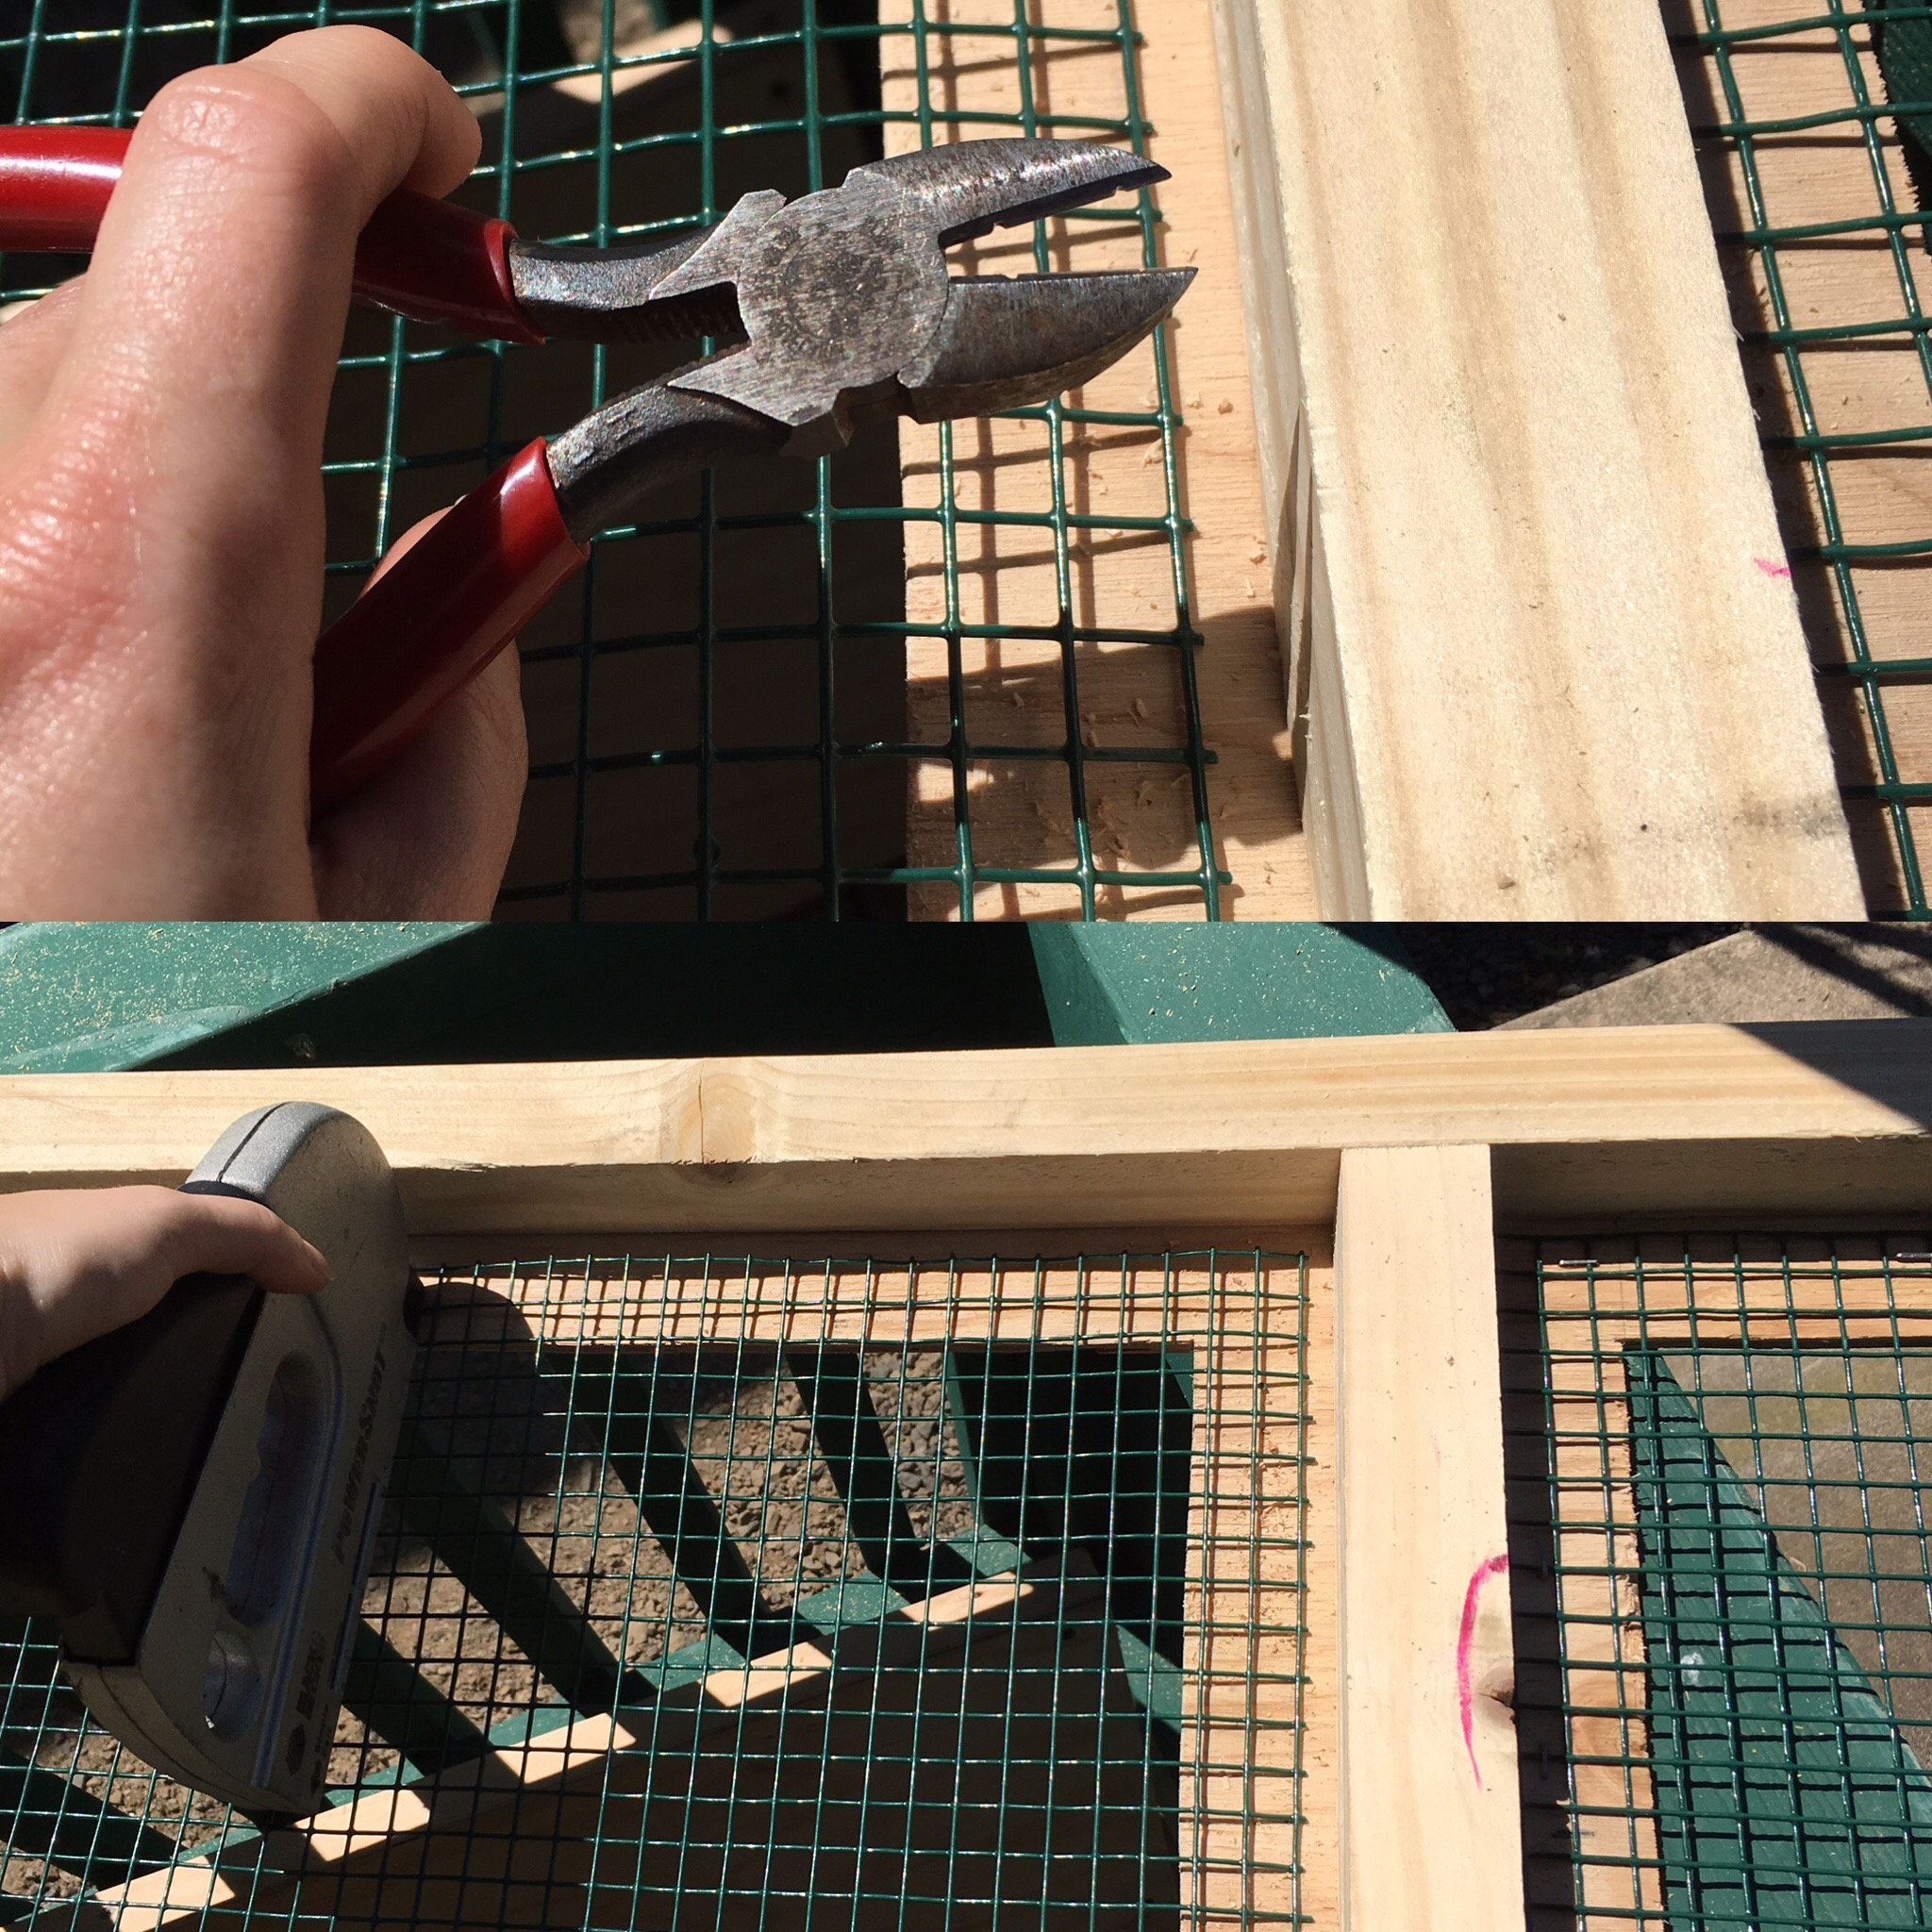 Clip and staple the wire mesh to cover the windows